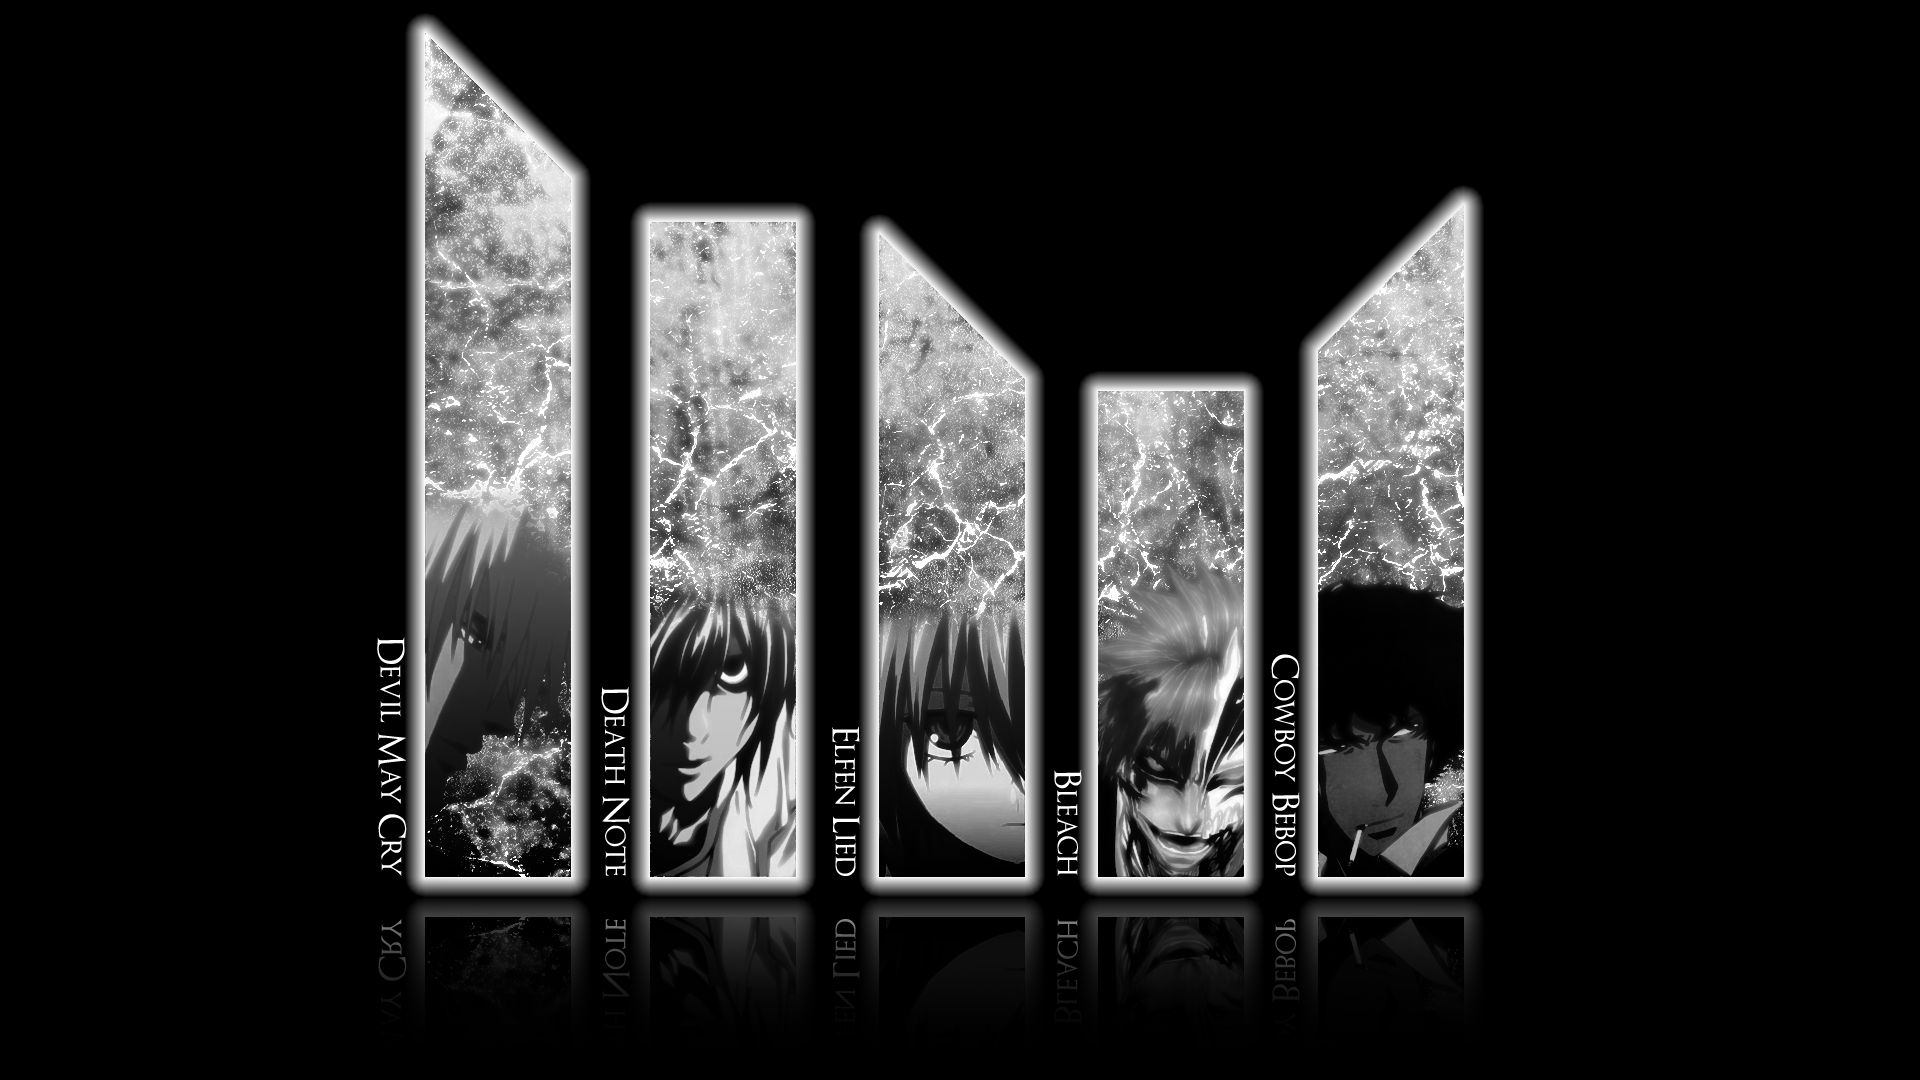 download wallpapers 1920x1080 anime - photo #14